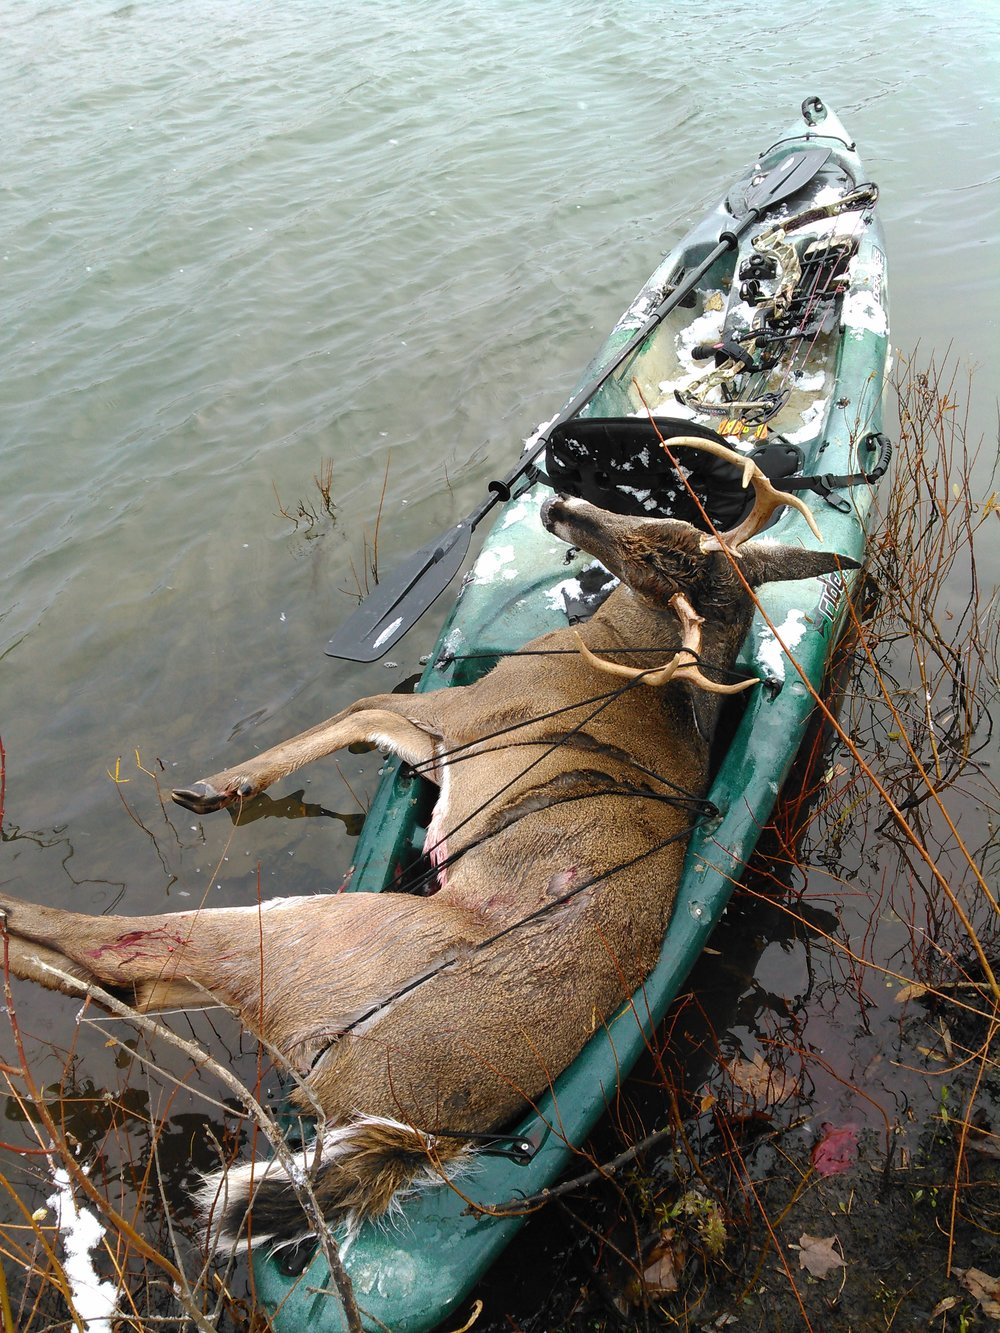 Dan harvested this nice public-land buck by kayaking in and hunting an island that the deer used as a bedding area